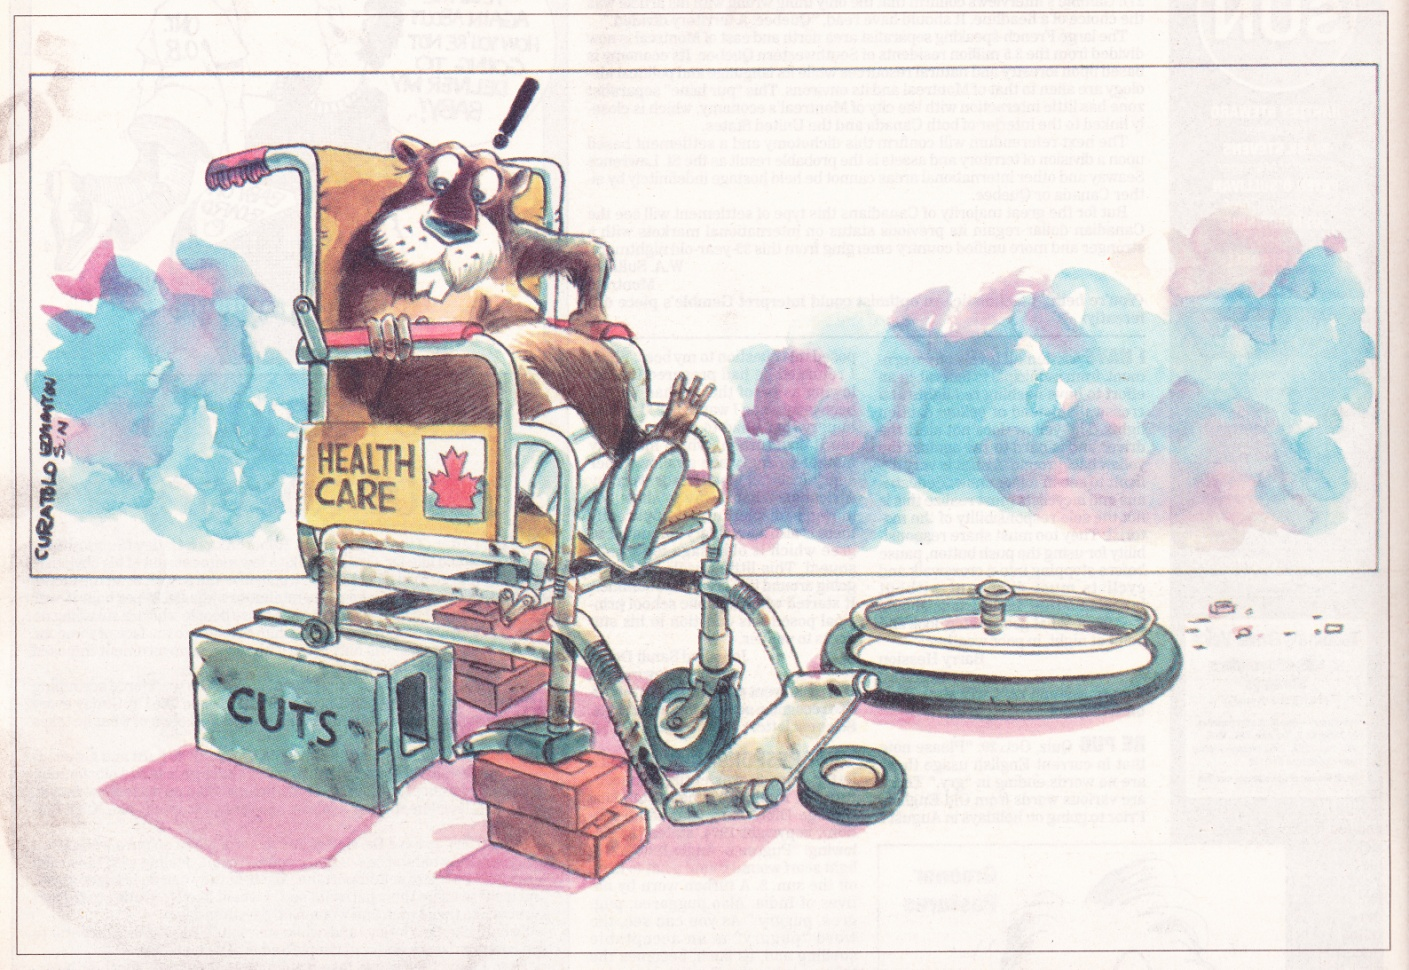 C:\Users\Robert\Documents\CARTOONING ILLUSTRATION ANIMATION\IMAGE BY CARTOONIST\C\CURATOLO Fred, Toronto Sun, 10 Nov. 1996, .jpg